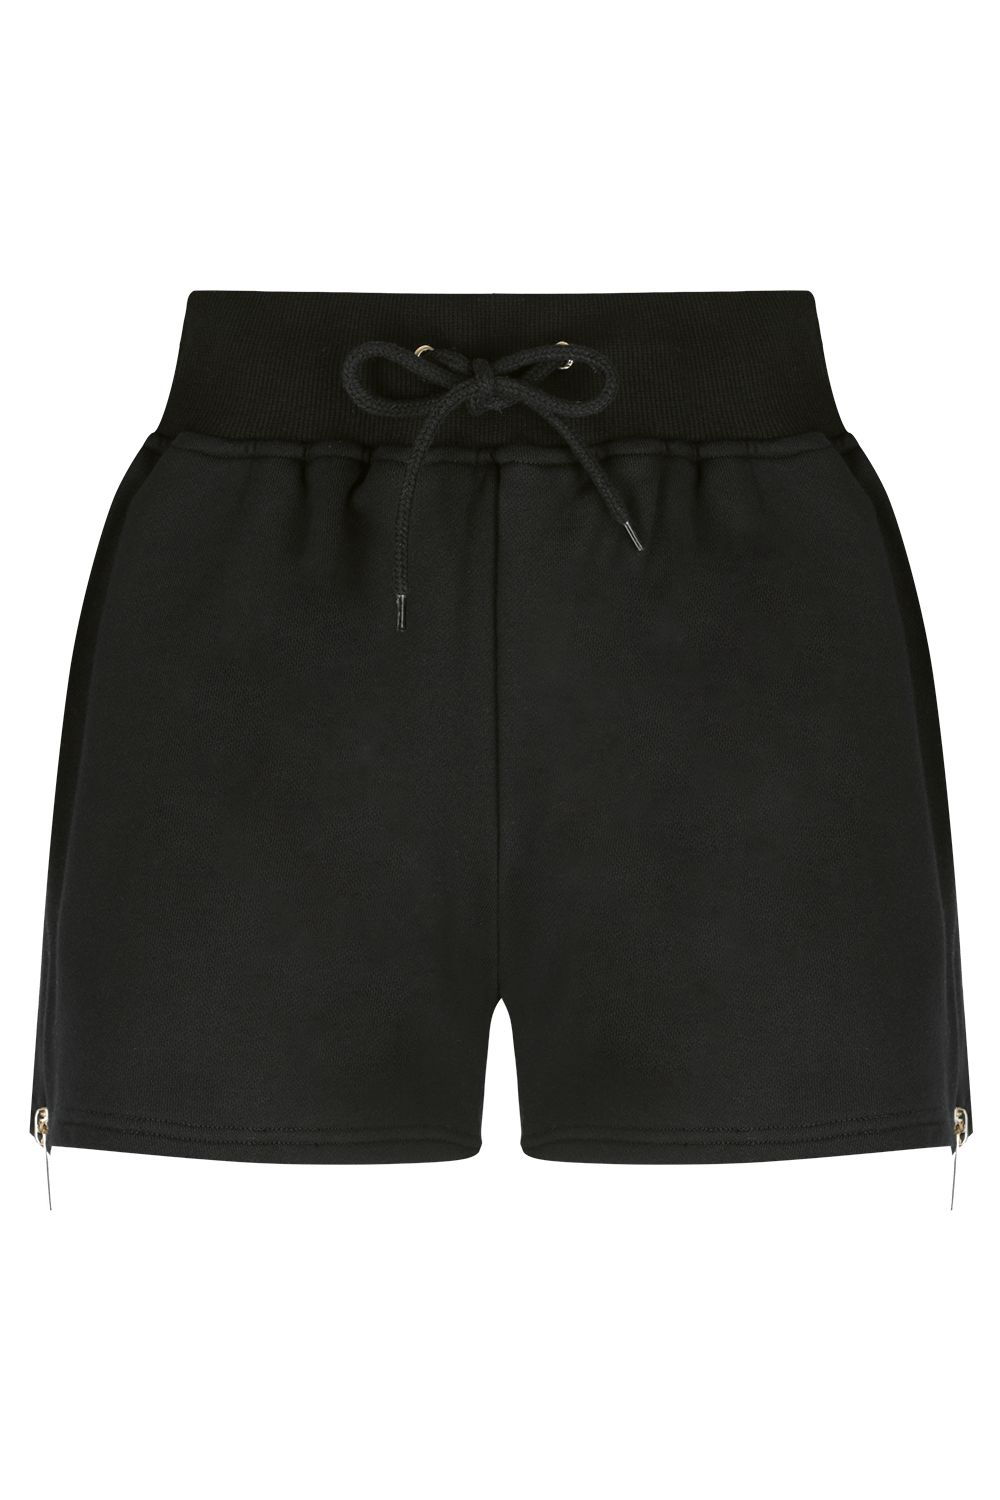 HATE ME Shorts - BLK/GLD - HAUS OF SONG